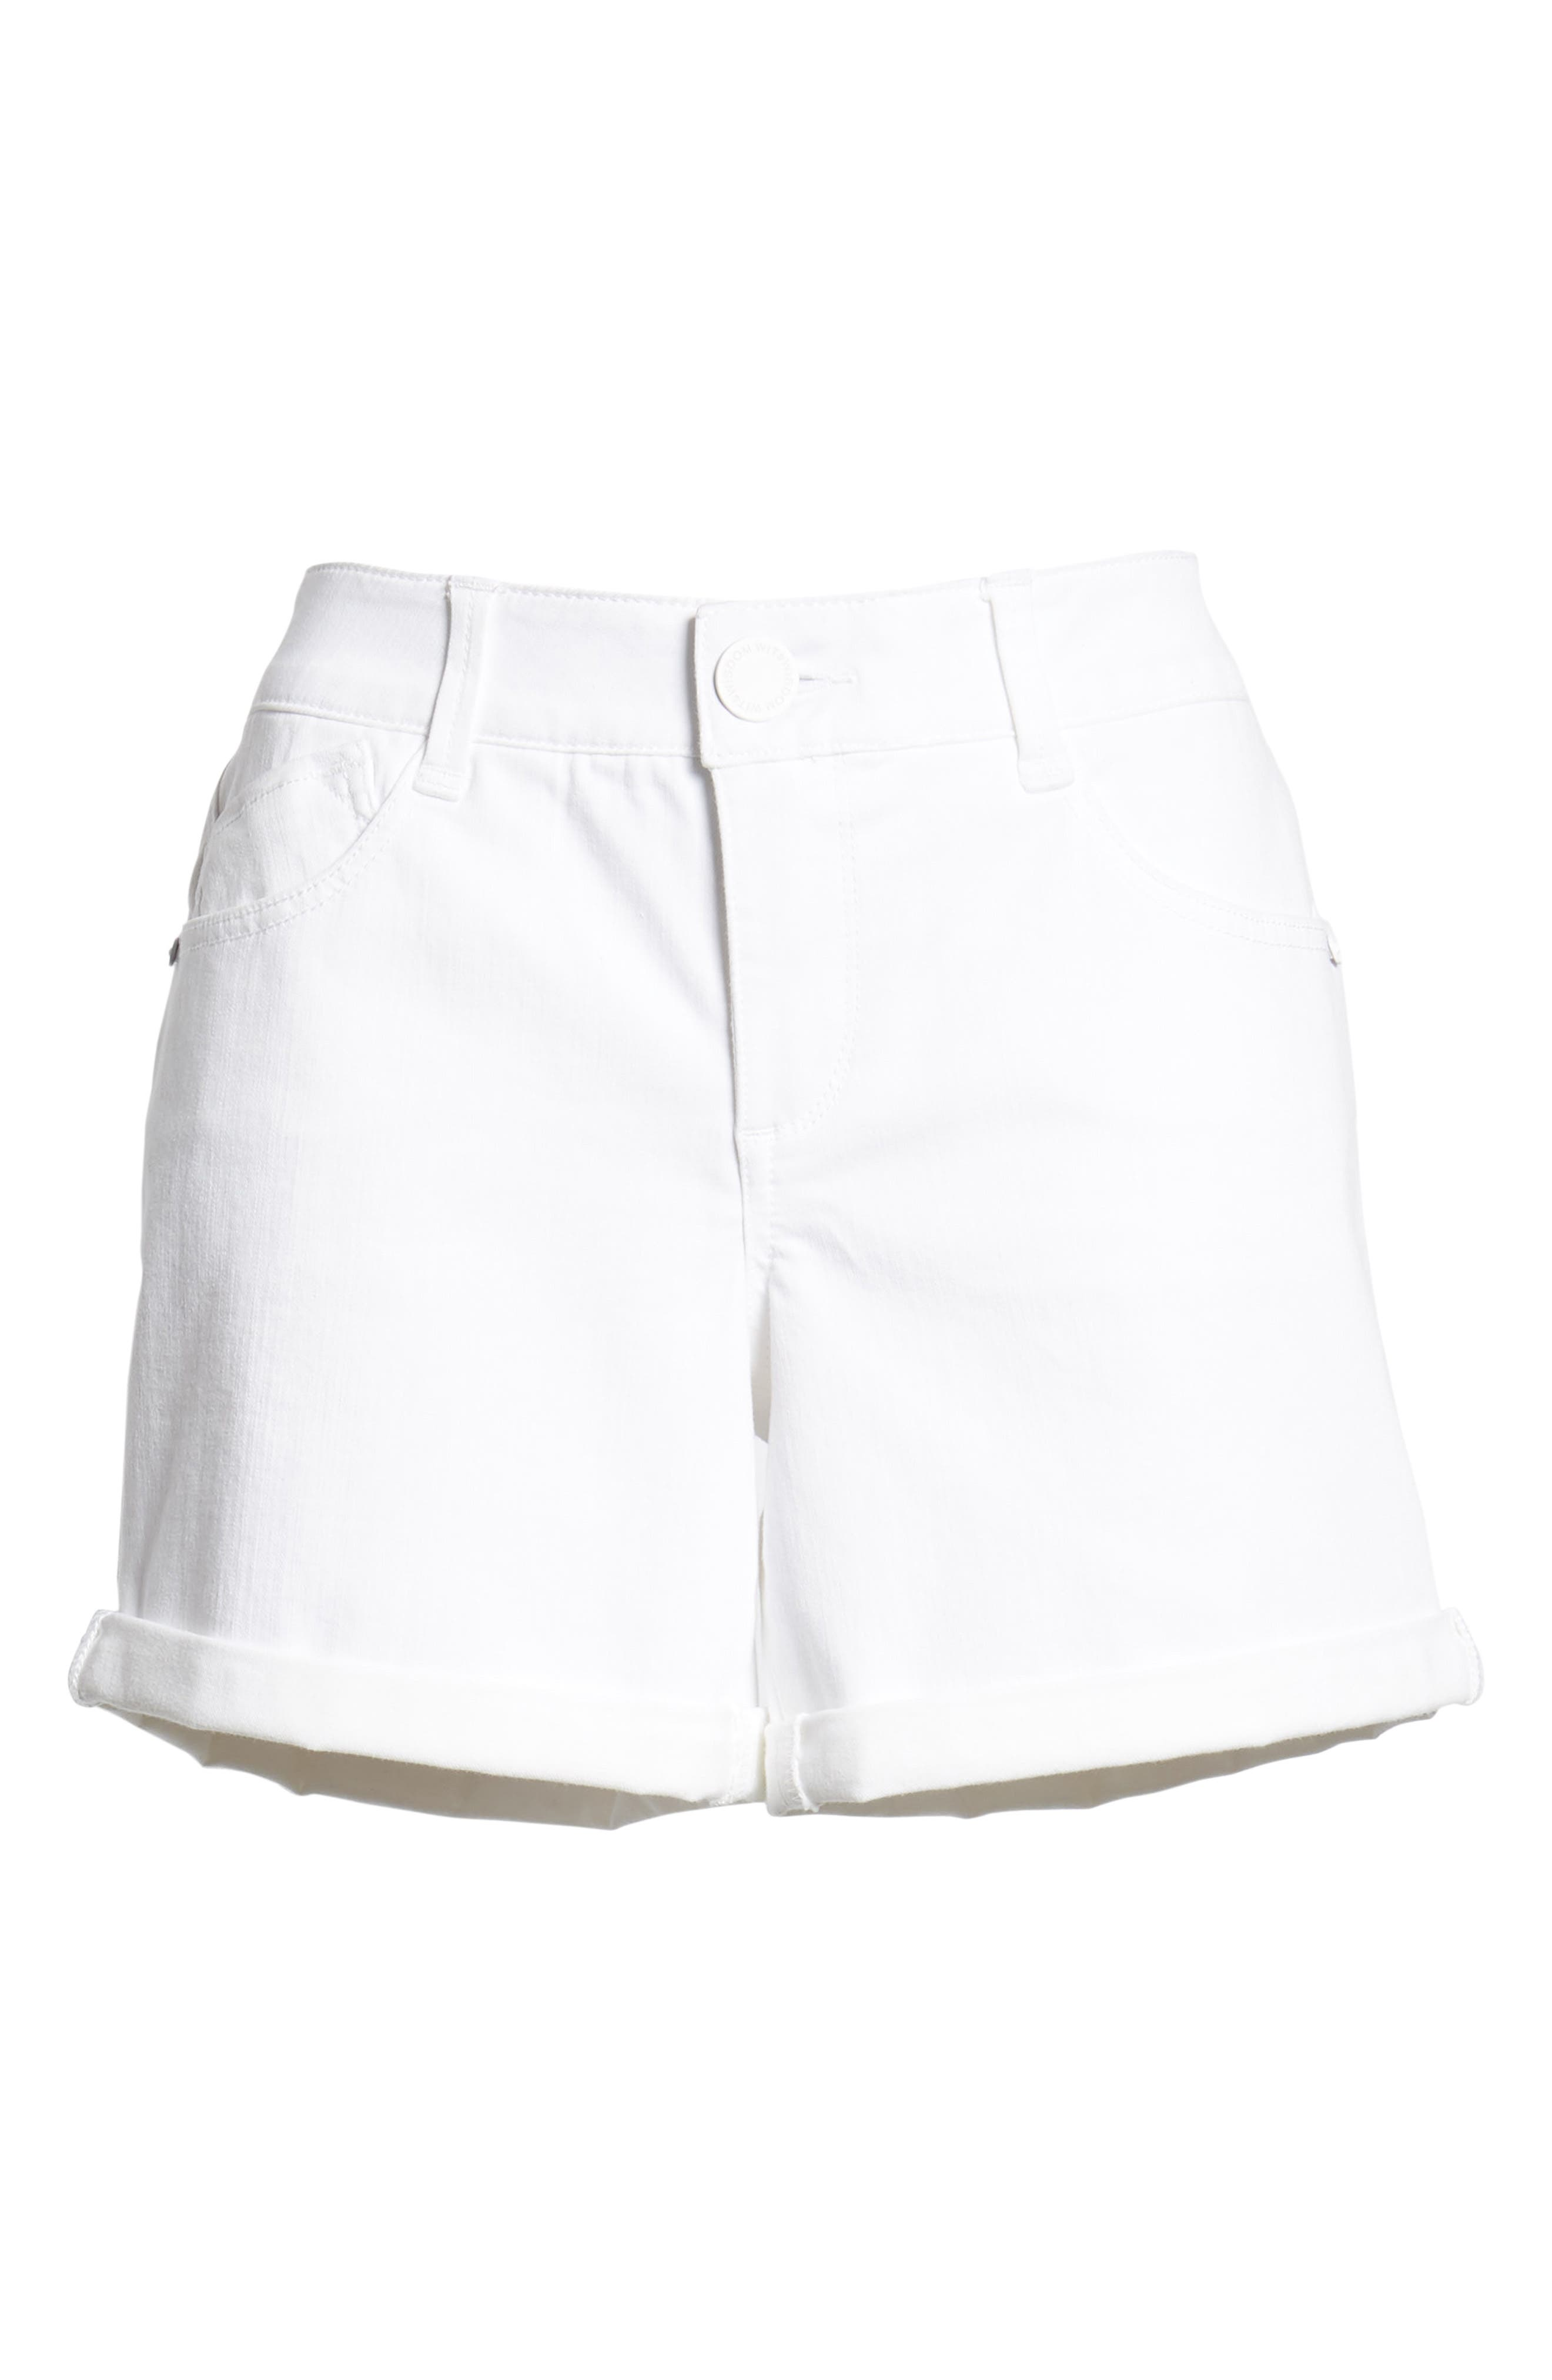 Ab-solution Cuffed White Shorts,                             Alternate thumbnail 7, color,                             106